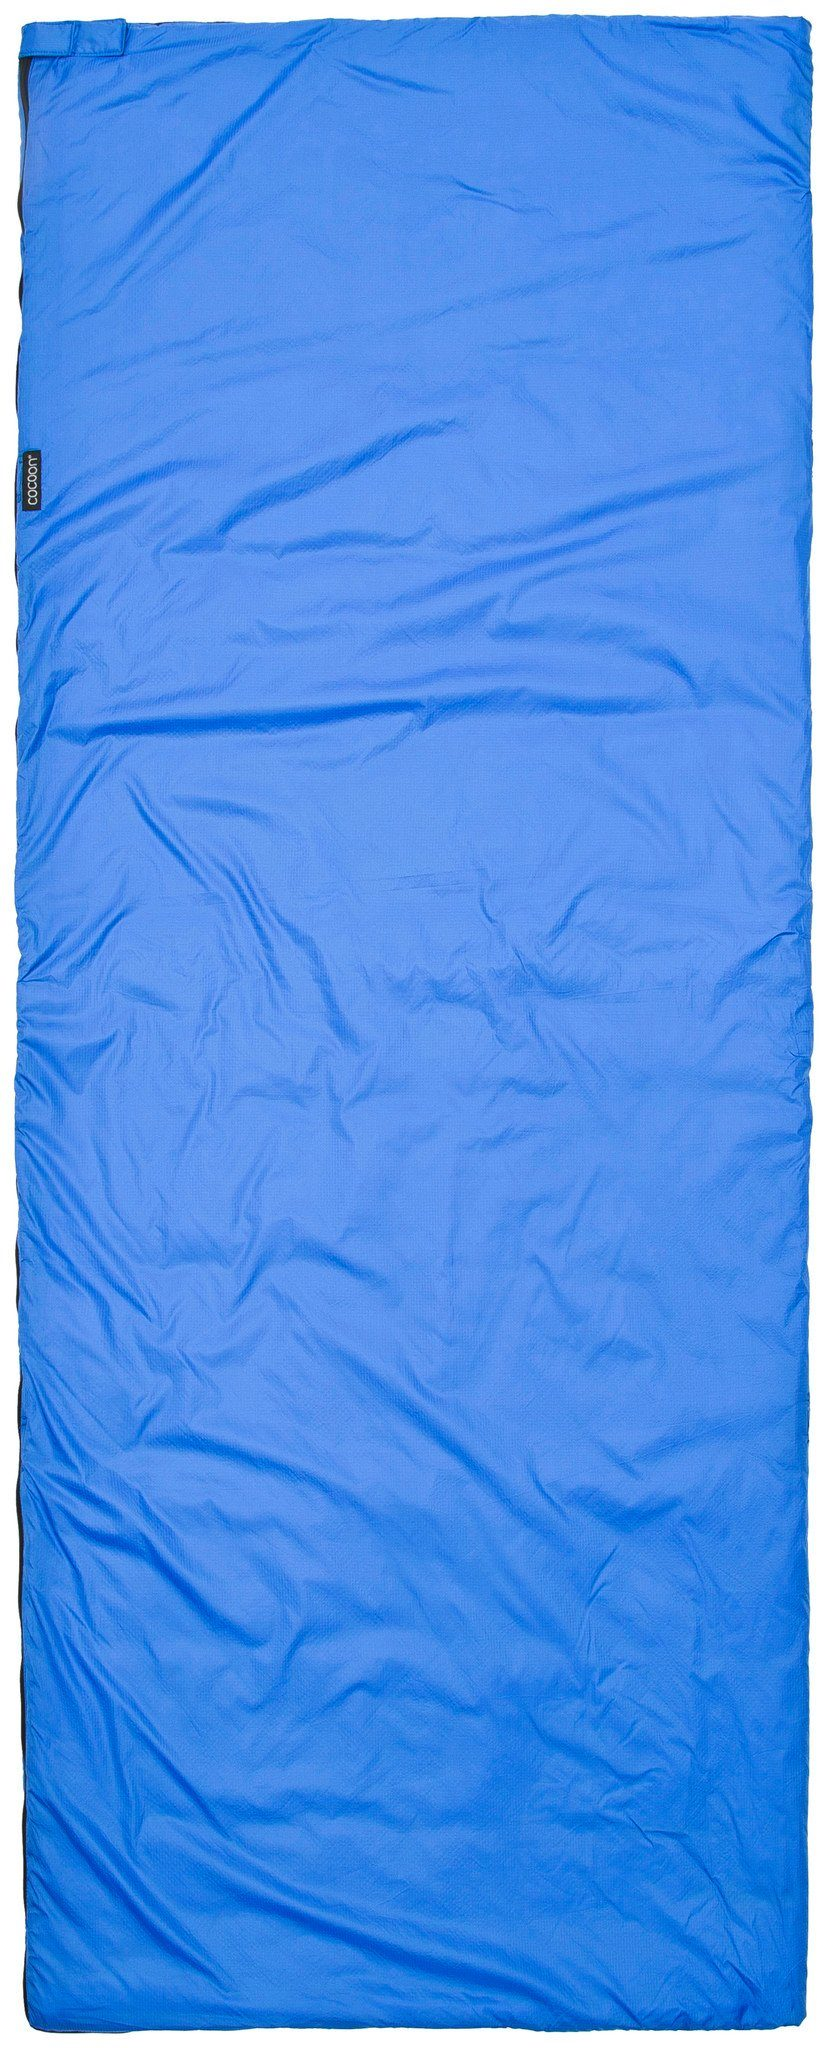 Cocoon Schlafsack »Tropic Traveler Sleeping Bag Silk Regular«